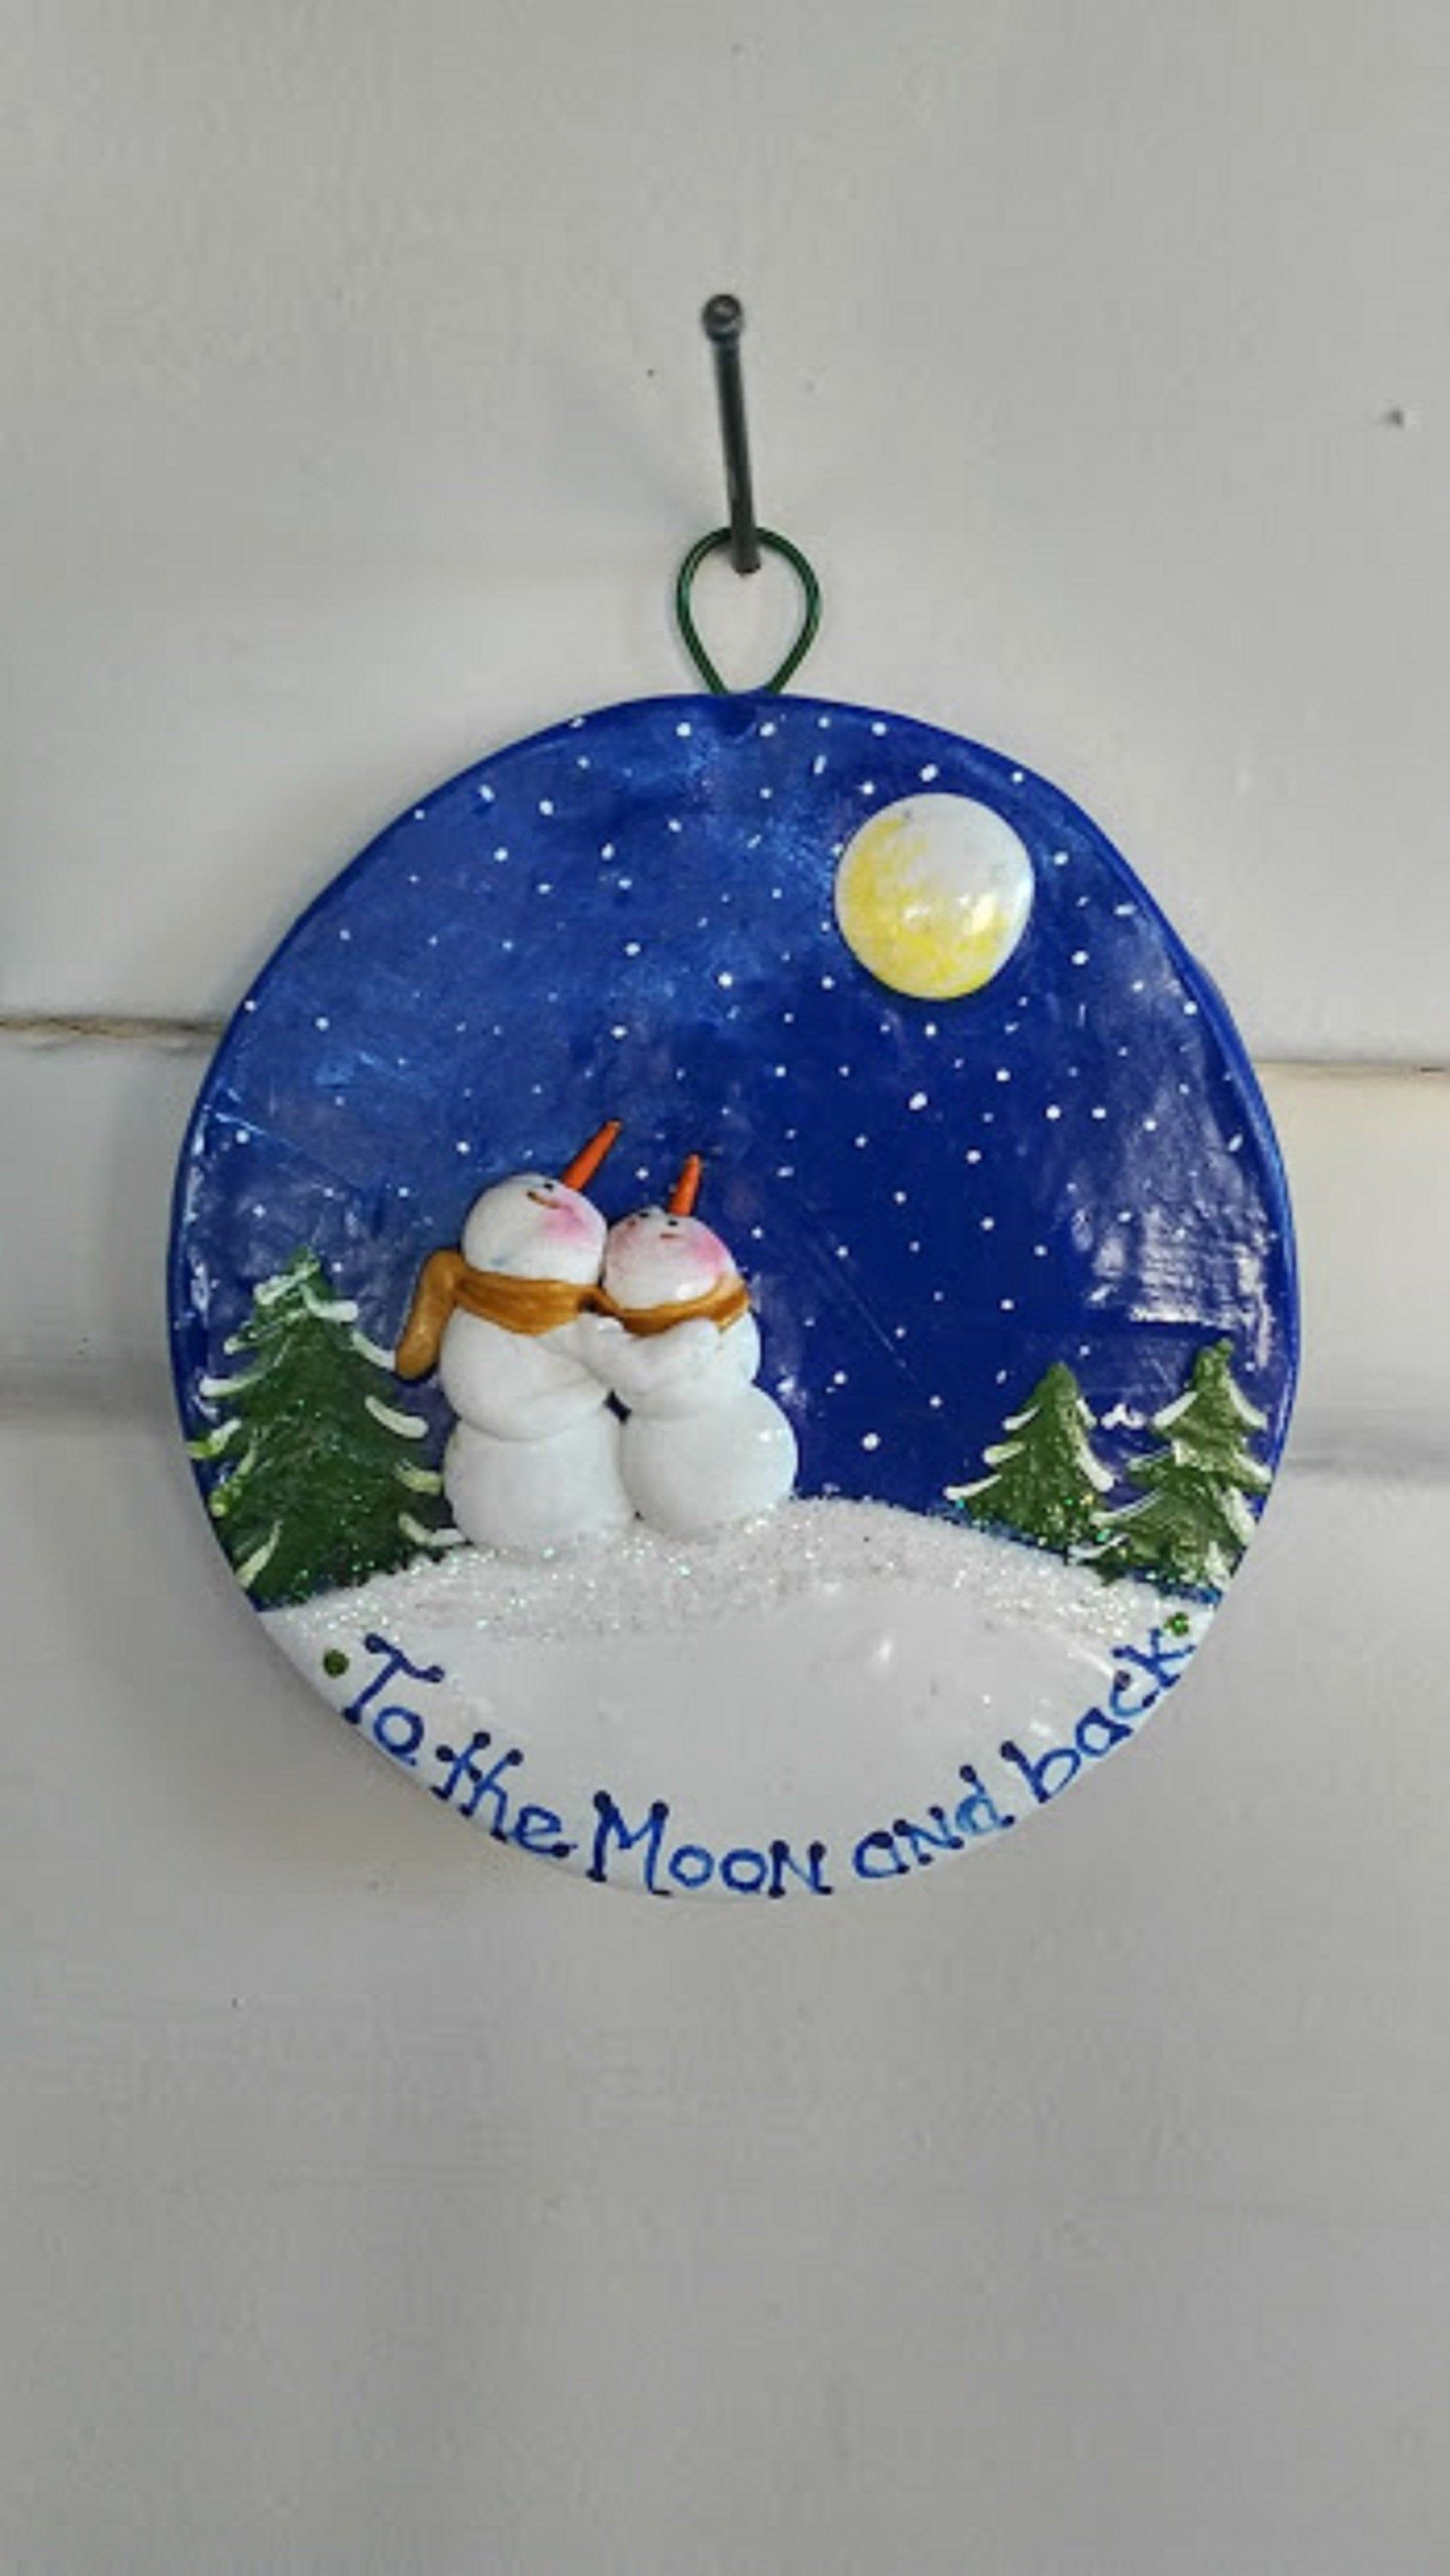 Hand Sculpted Hand Painted 3 Polymer To The Moon And Etsy In 2021 Hand Painted Ornaments Polymer Clay Ornaments Polymer Clay Christmas